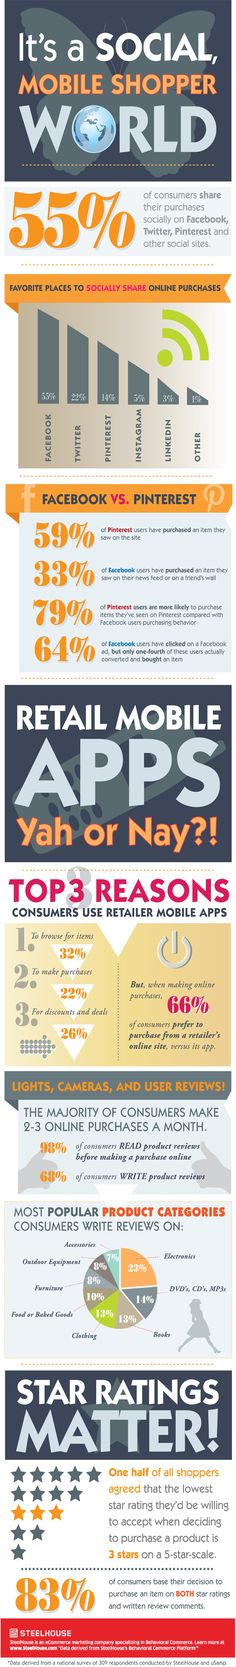 It's-A-Social-Mobile-Shopper-World-infographic  Find always more on http://infographicsmania.com